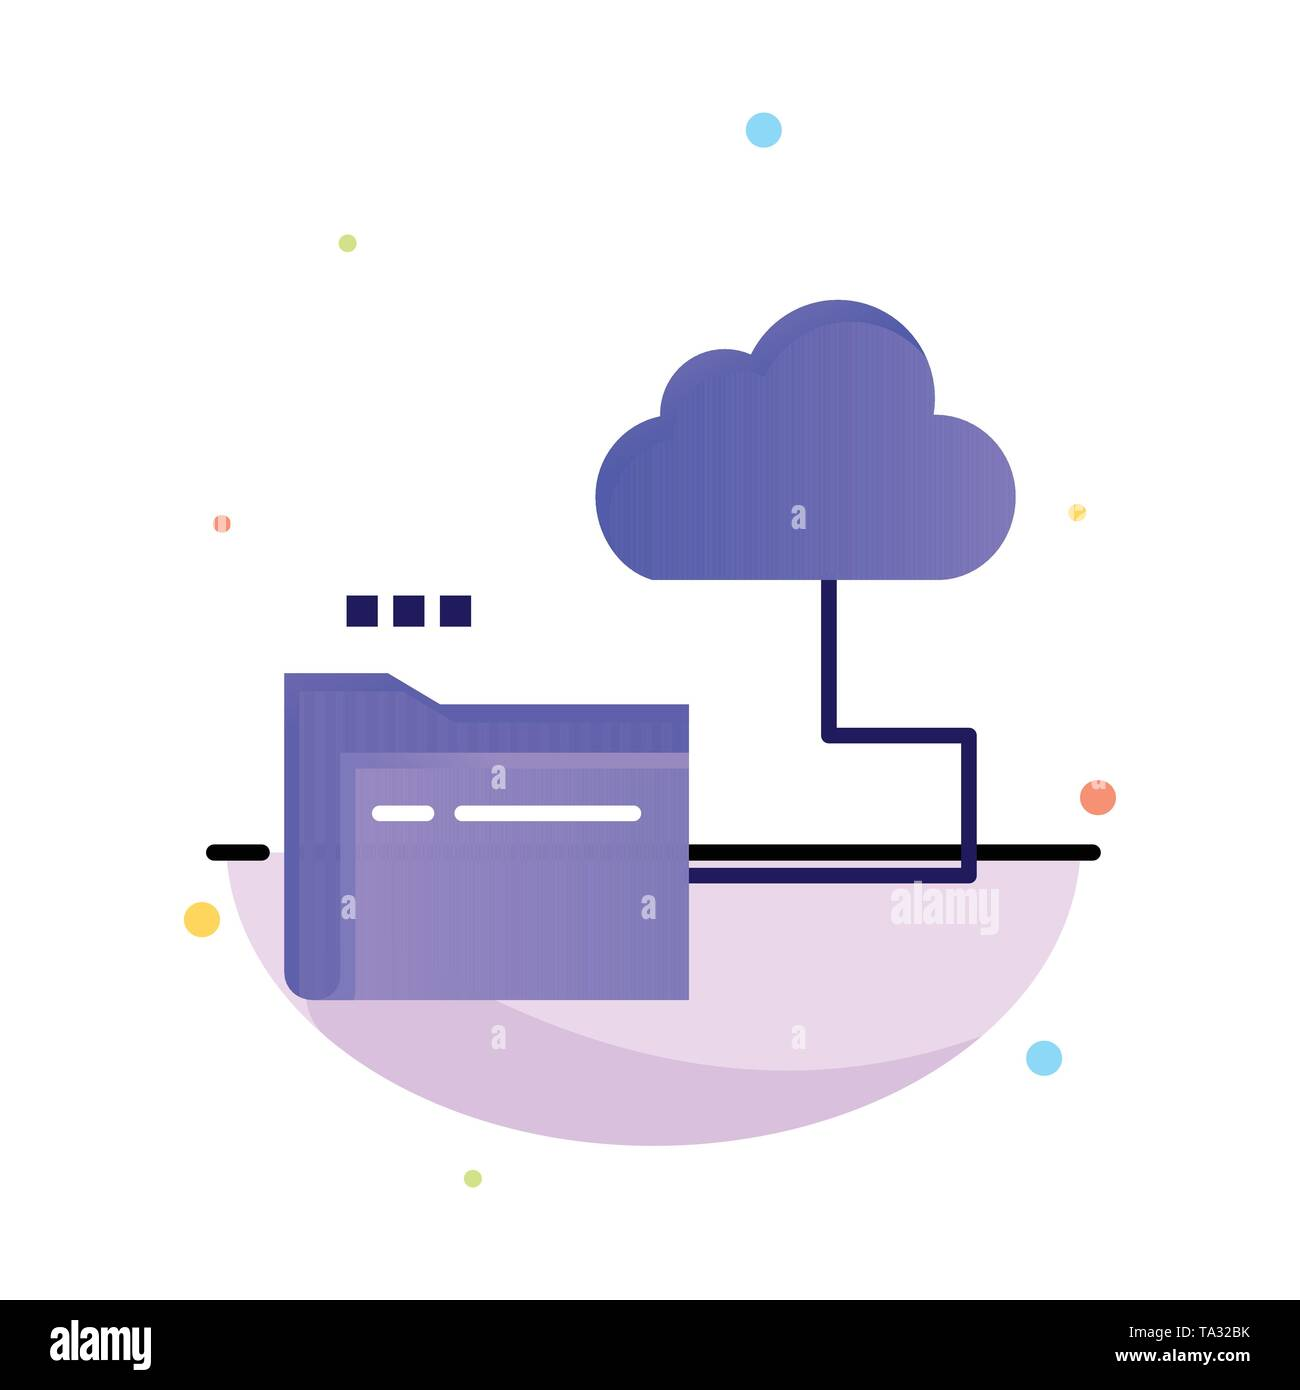 Cloud, Folder, Storage, File Abstract Flat Color Icon Template - Stock Image